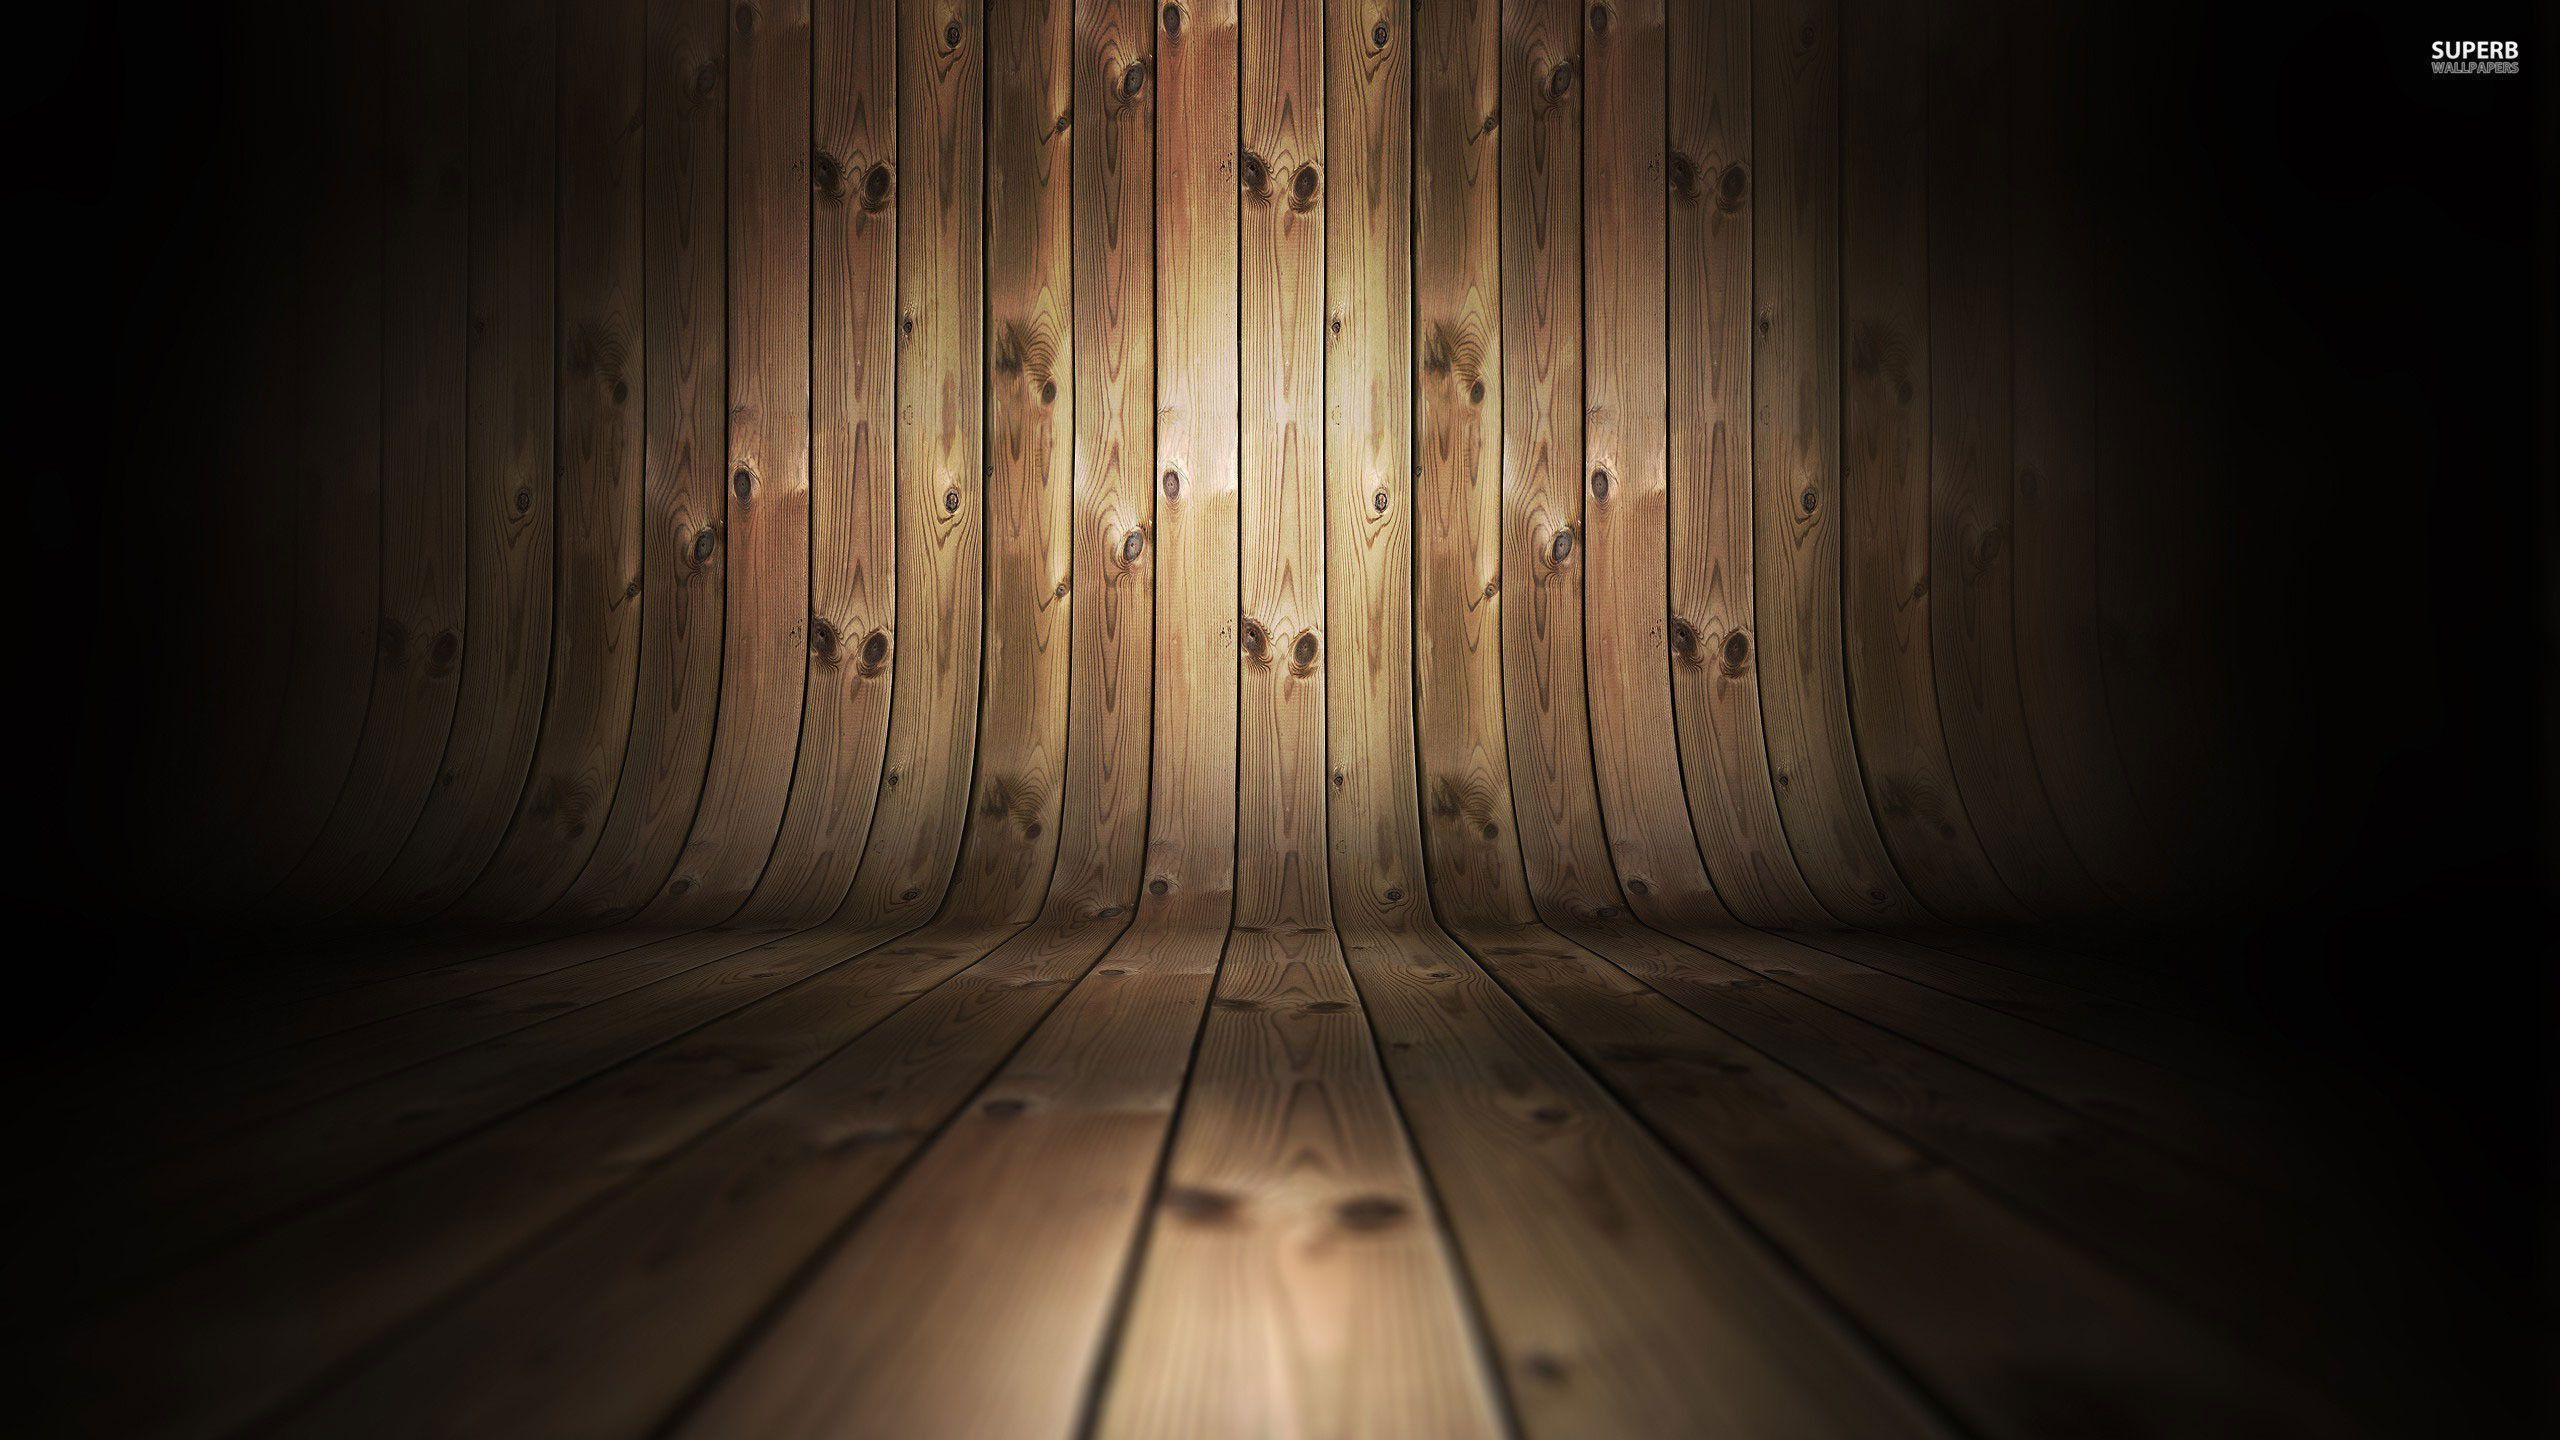 3d wallpaper wood floor - photo #29